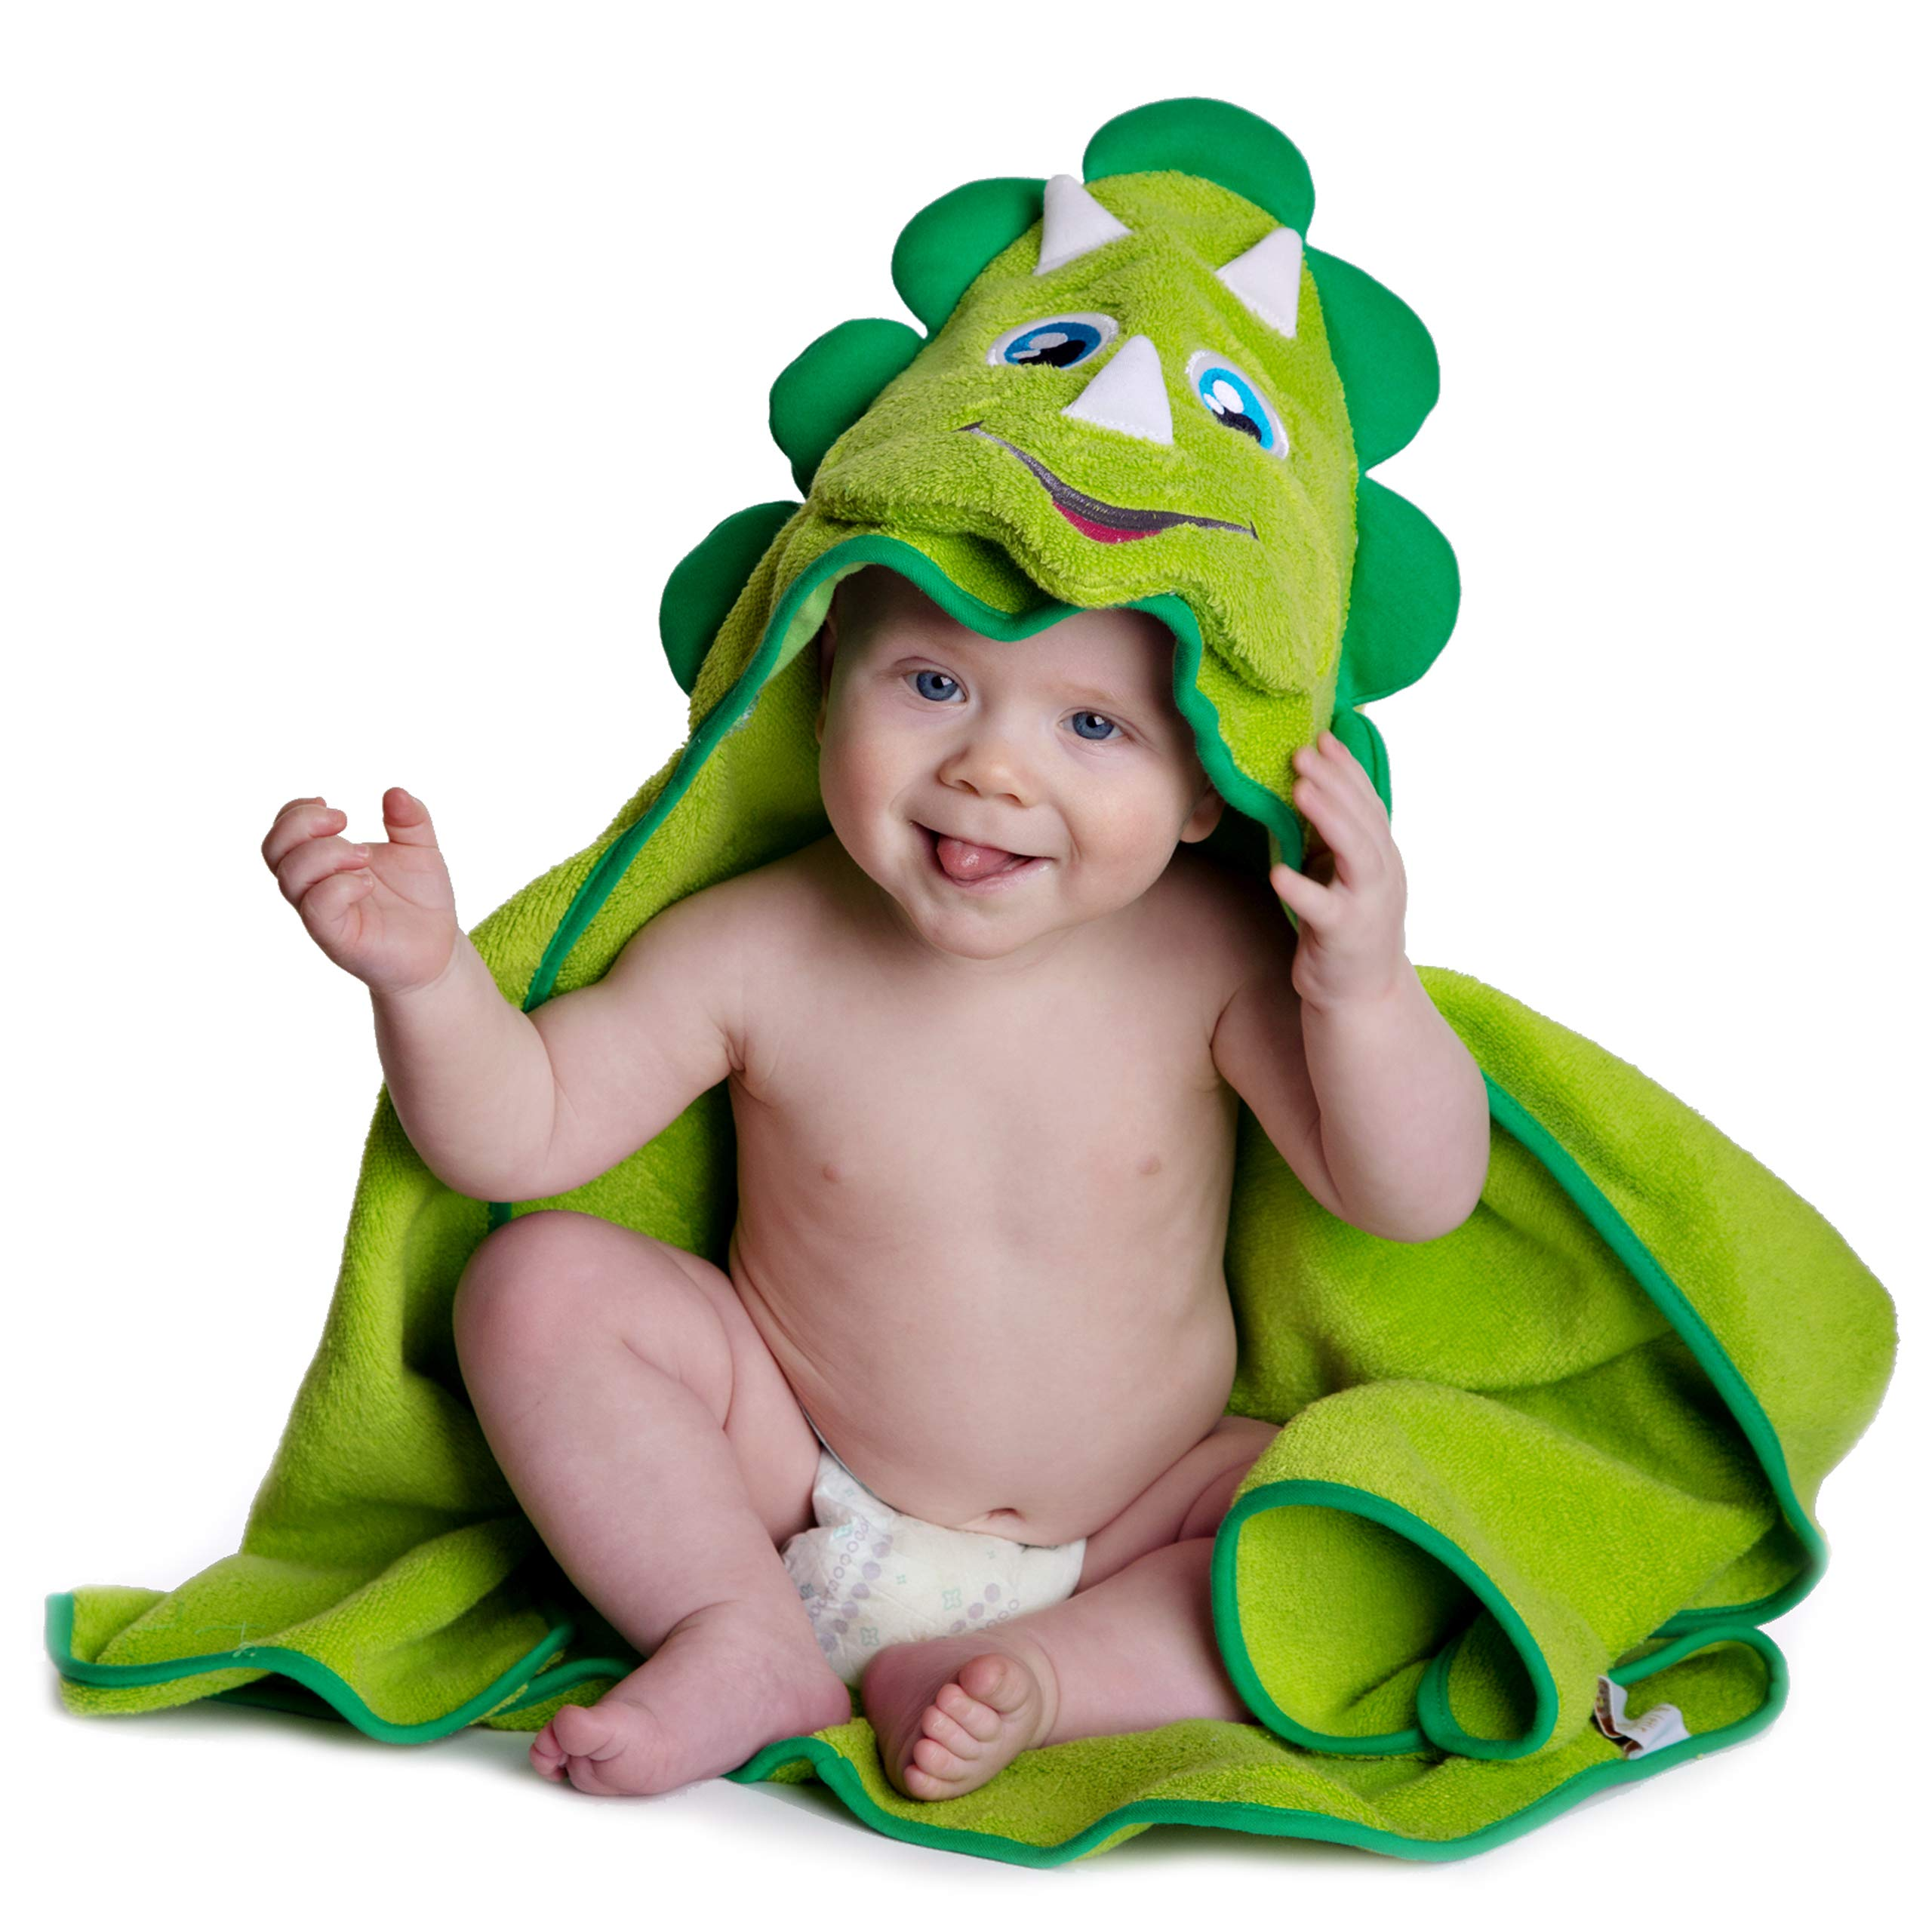 Hooded Baby Towel Dinosaur by Little Tinkers World Natural Cotton Soft and Absorbent Bath Towels with Hood for Babies, Toddlers, Perfect Baby Shower Gift by Little Tinkers World